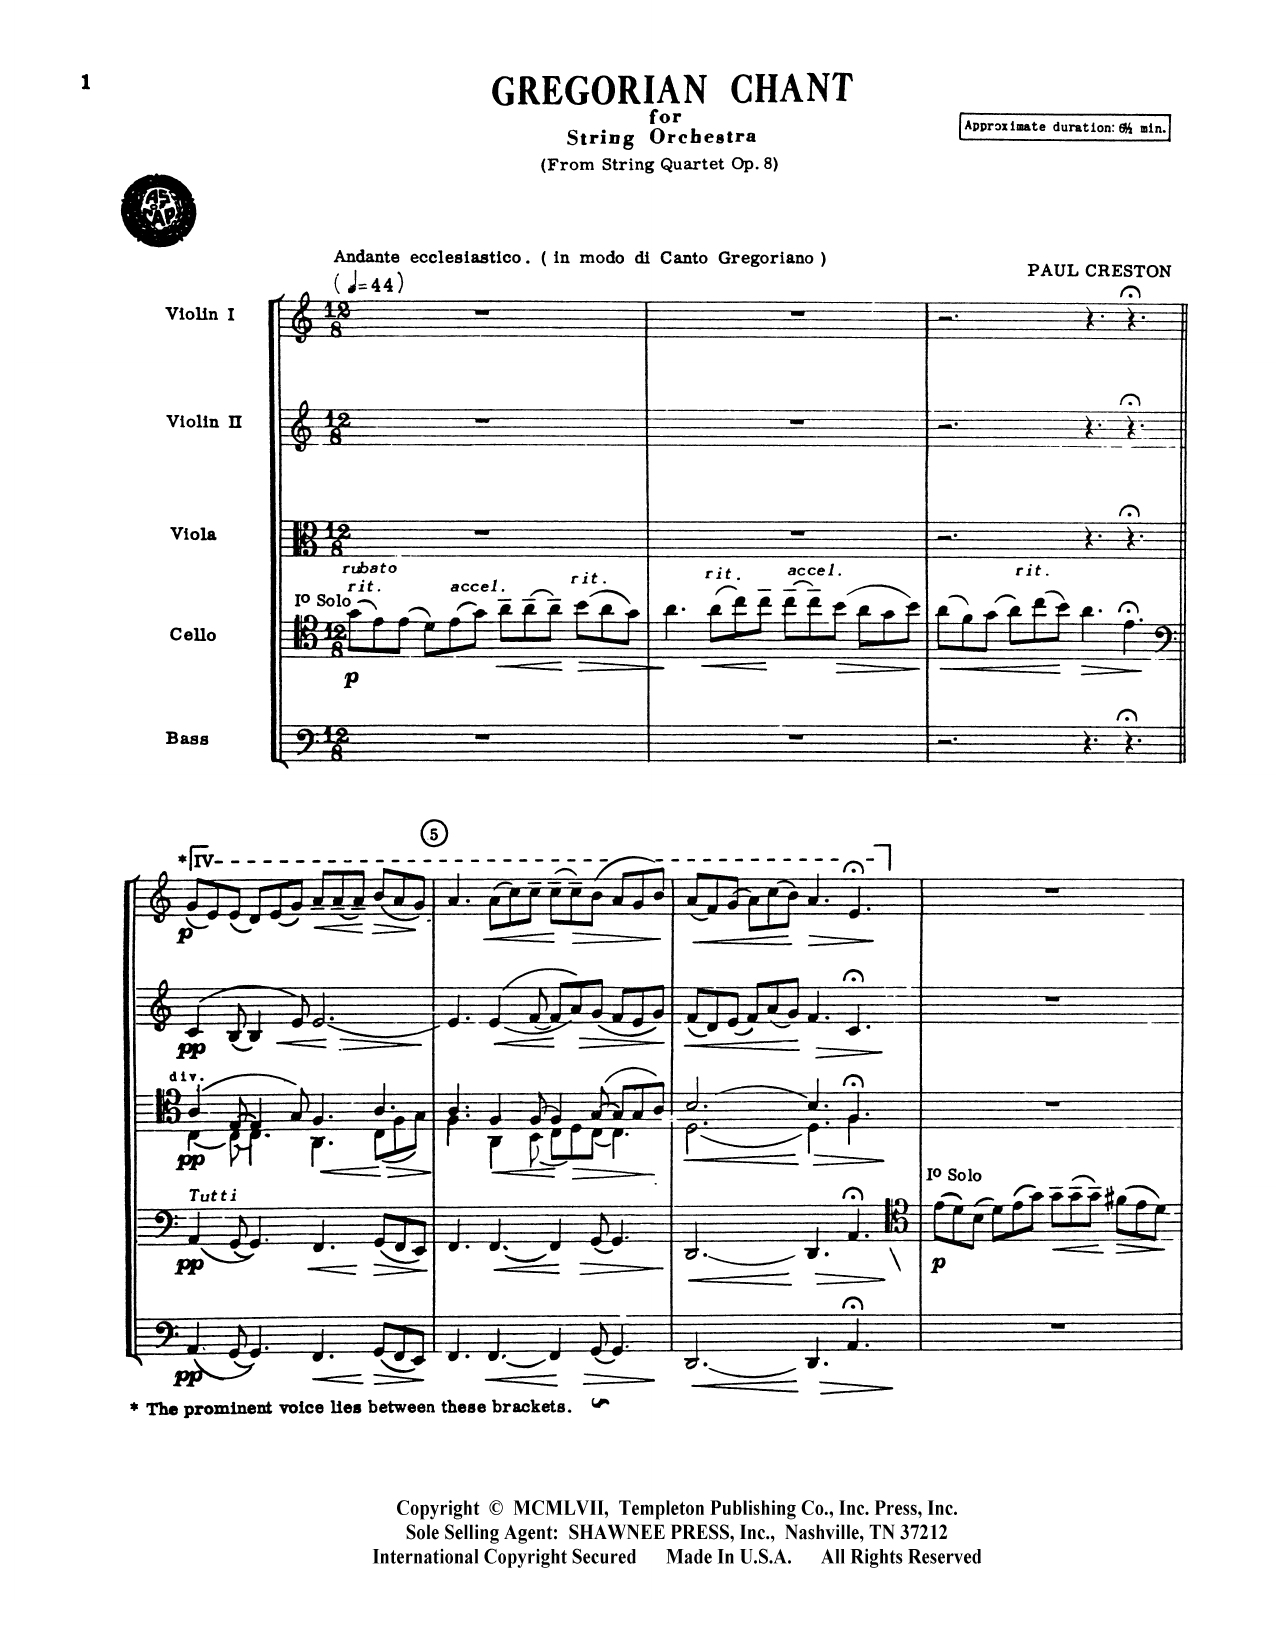 Gregorian Chant for String Orchestra - Violin 1 by Paul Creston Orchestra  Digital Sheet Music